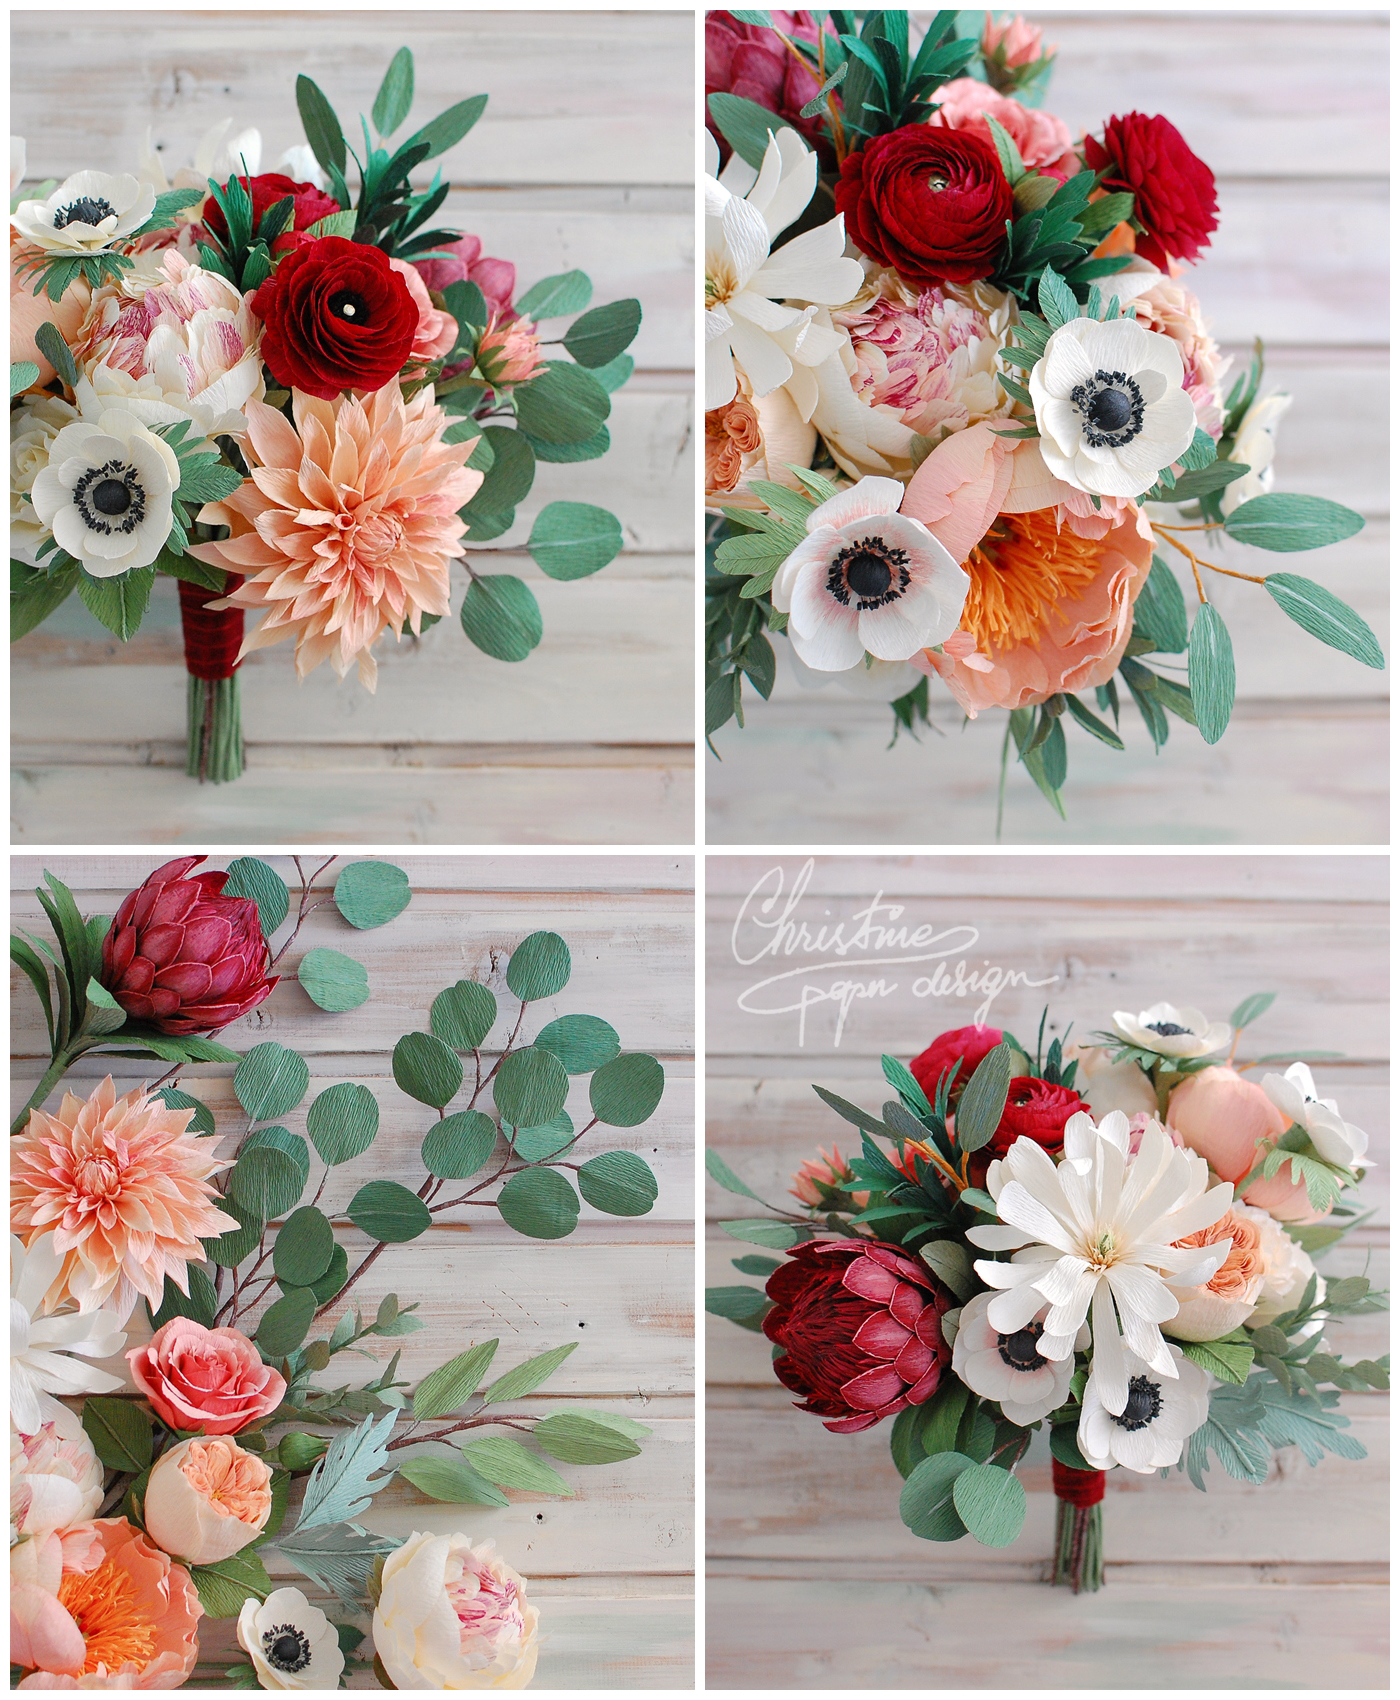 paper bridal bouquets with red - Christine paper design (4)